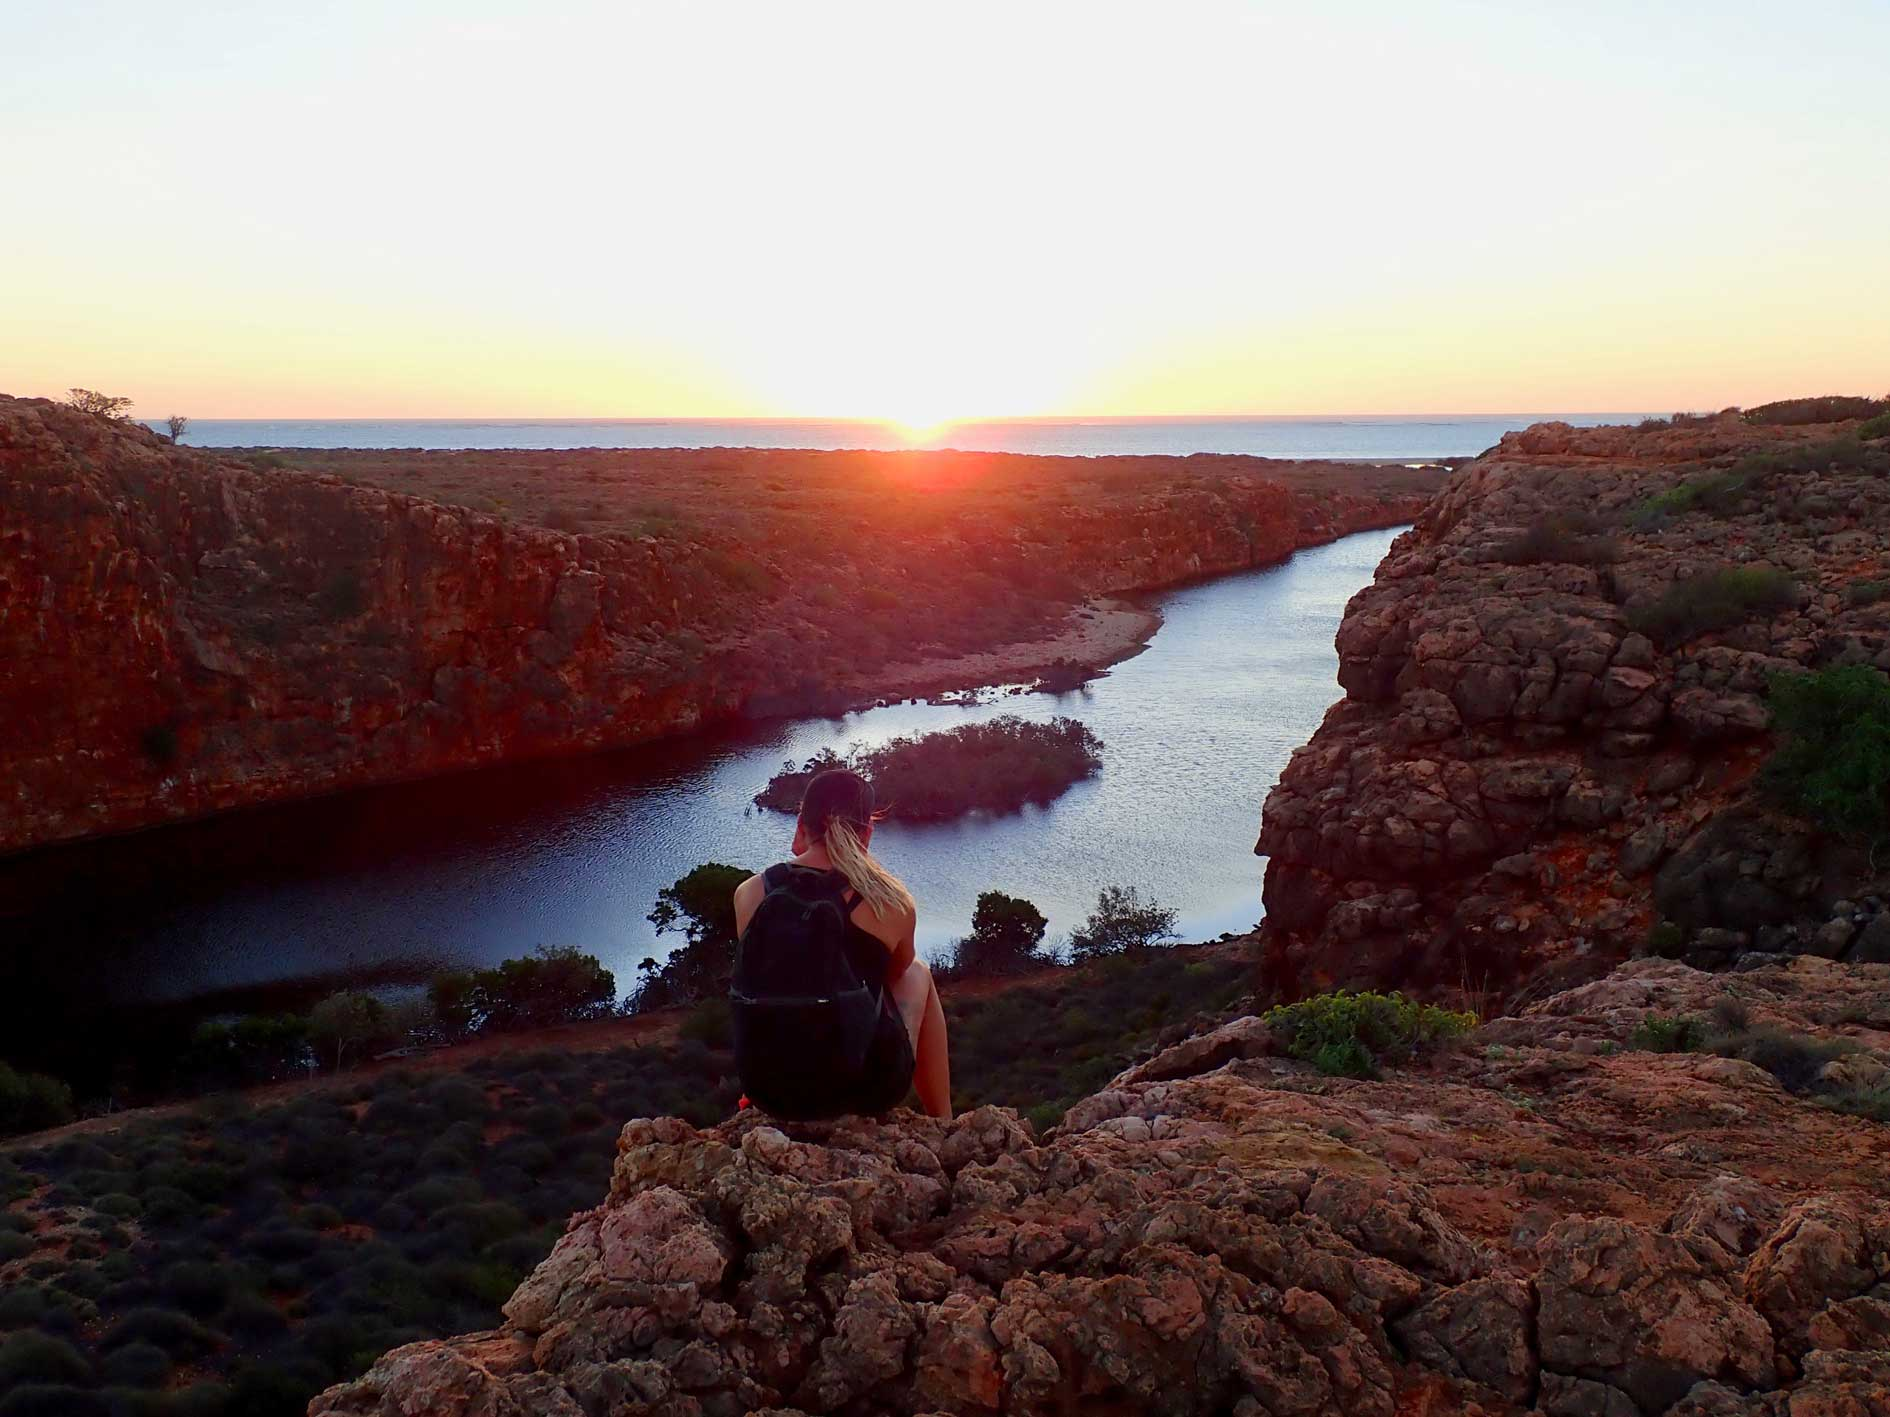 Lady at the top of Yardie Crekk Gorge enjoying a spectacular sunset on overnight kayaking, snorkelling and camping tour with Exmouth Adventure Co, Ningaloo Reef